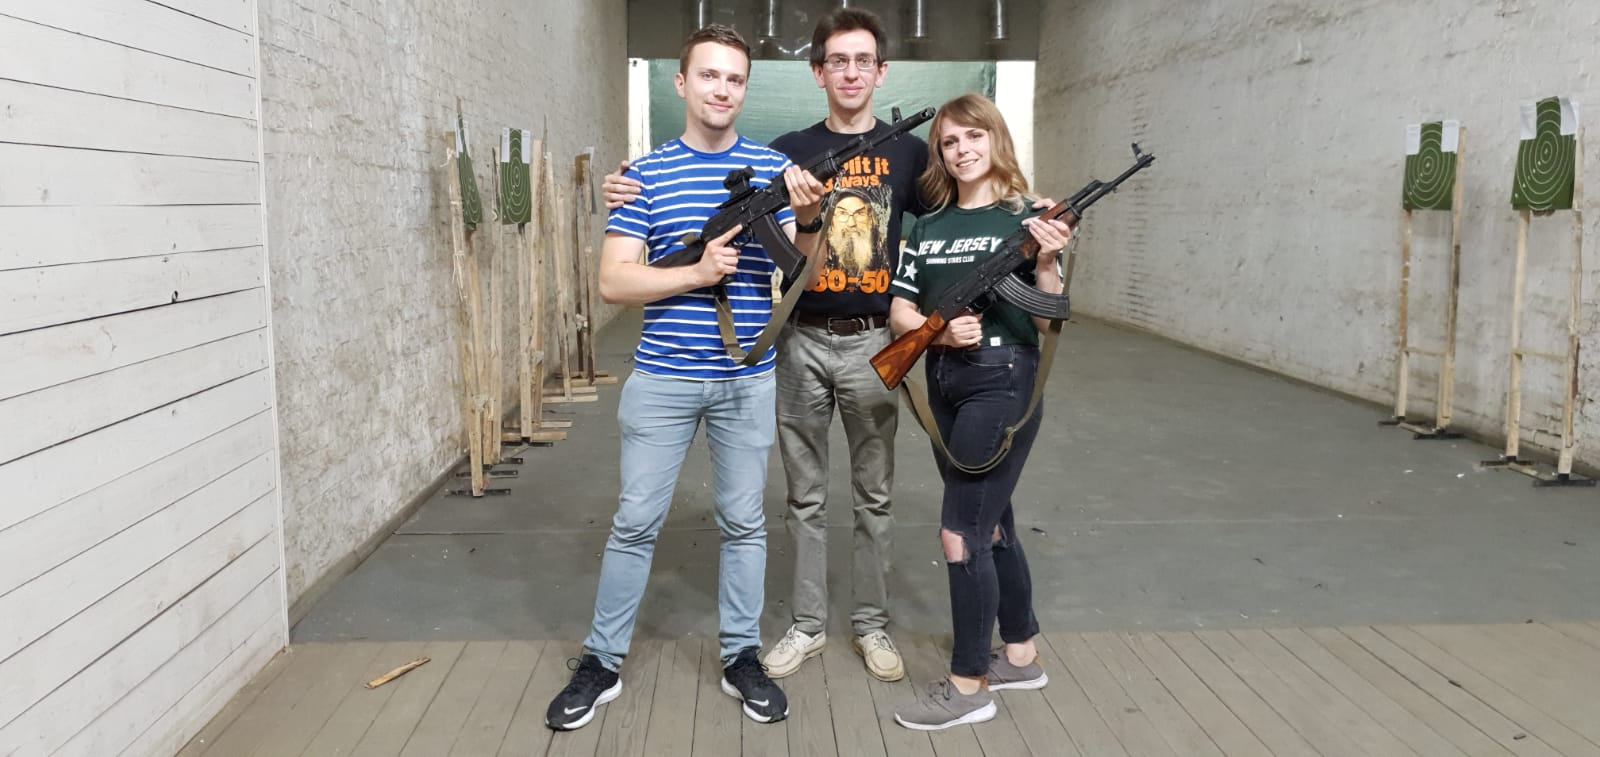 French at MoscowGunTours